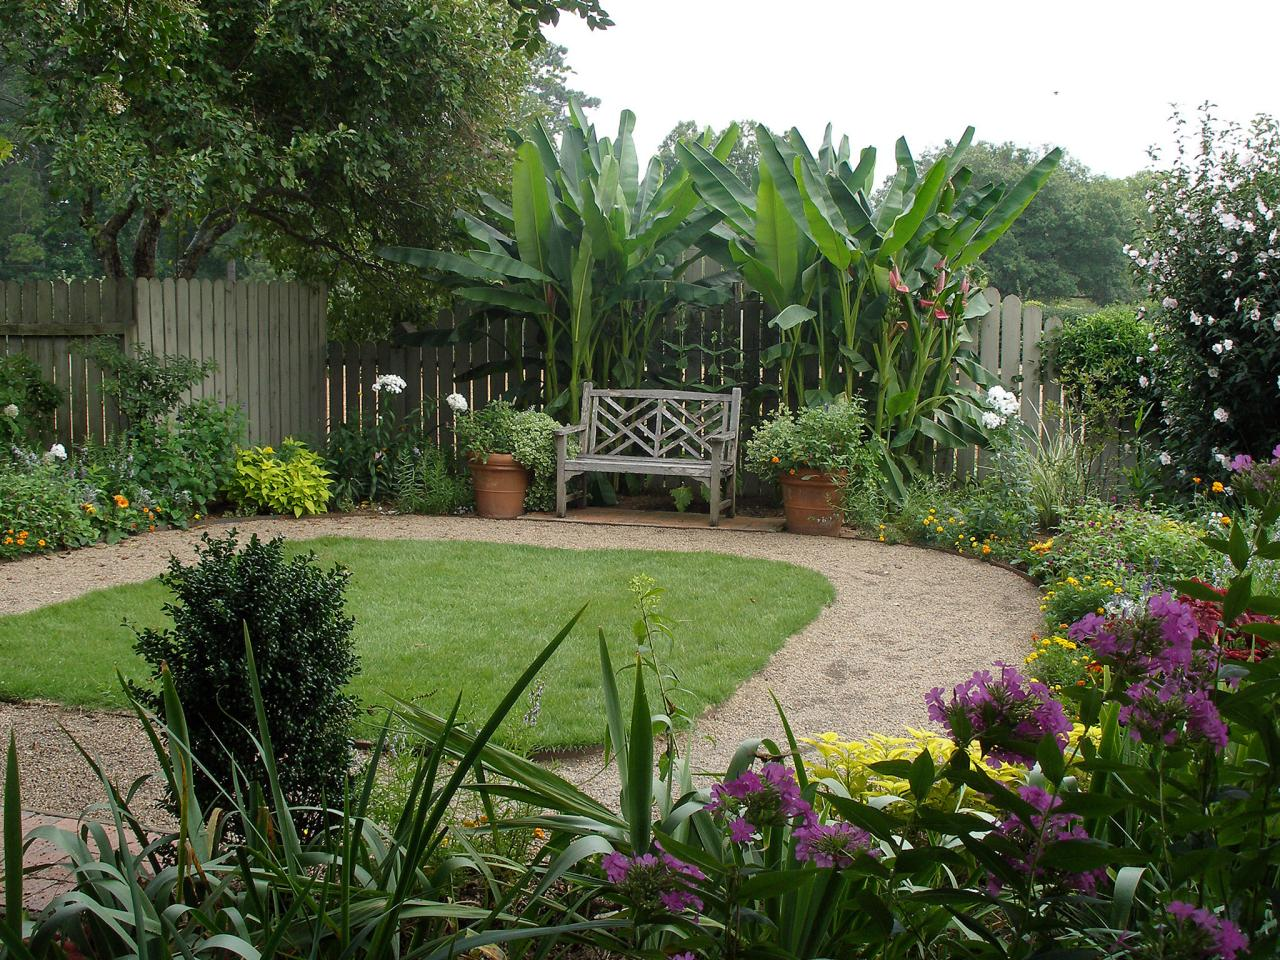 Basic landscaping tips for an empty yard hgtv for Simple landscape design